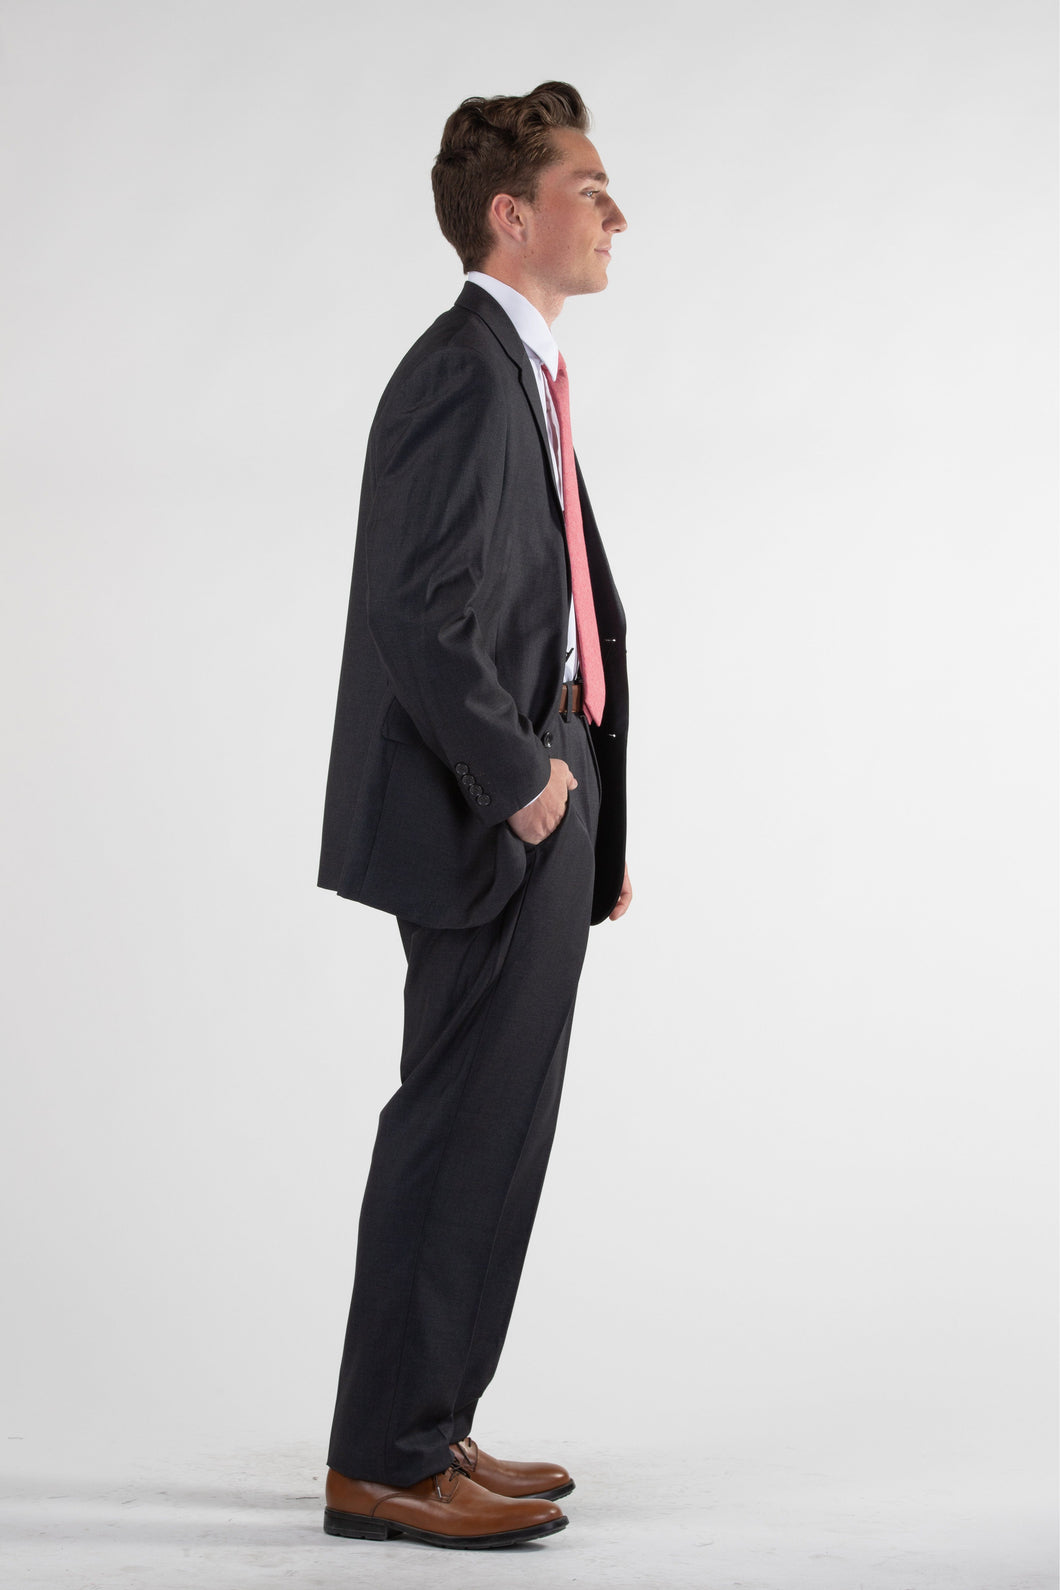 General - Signature Suit Classic Charcoal